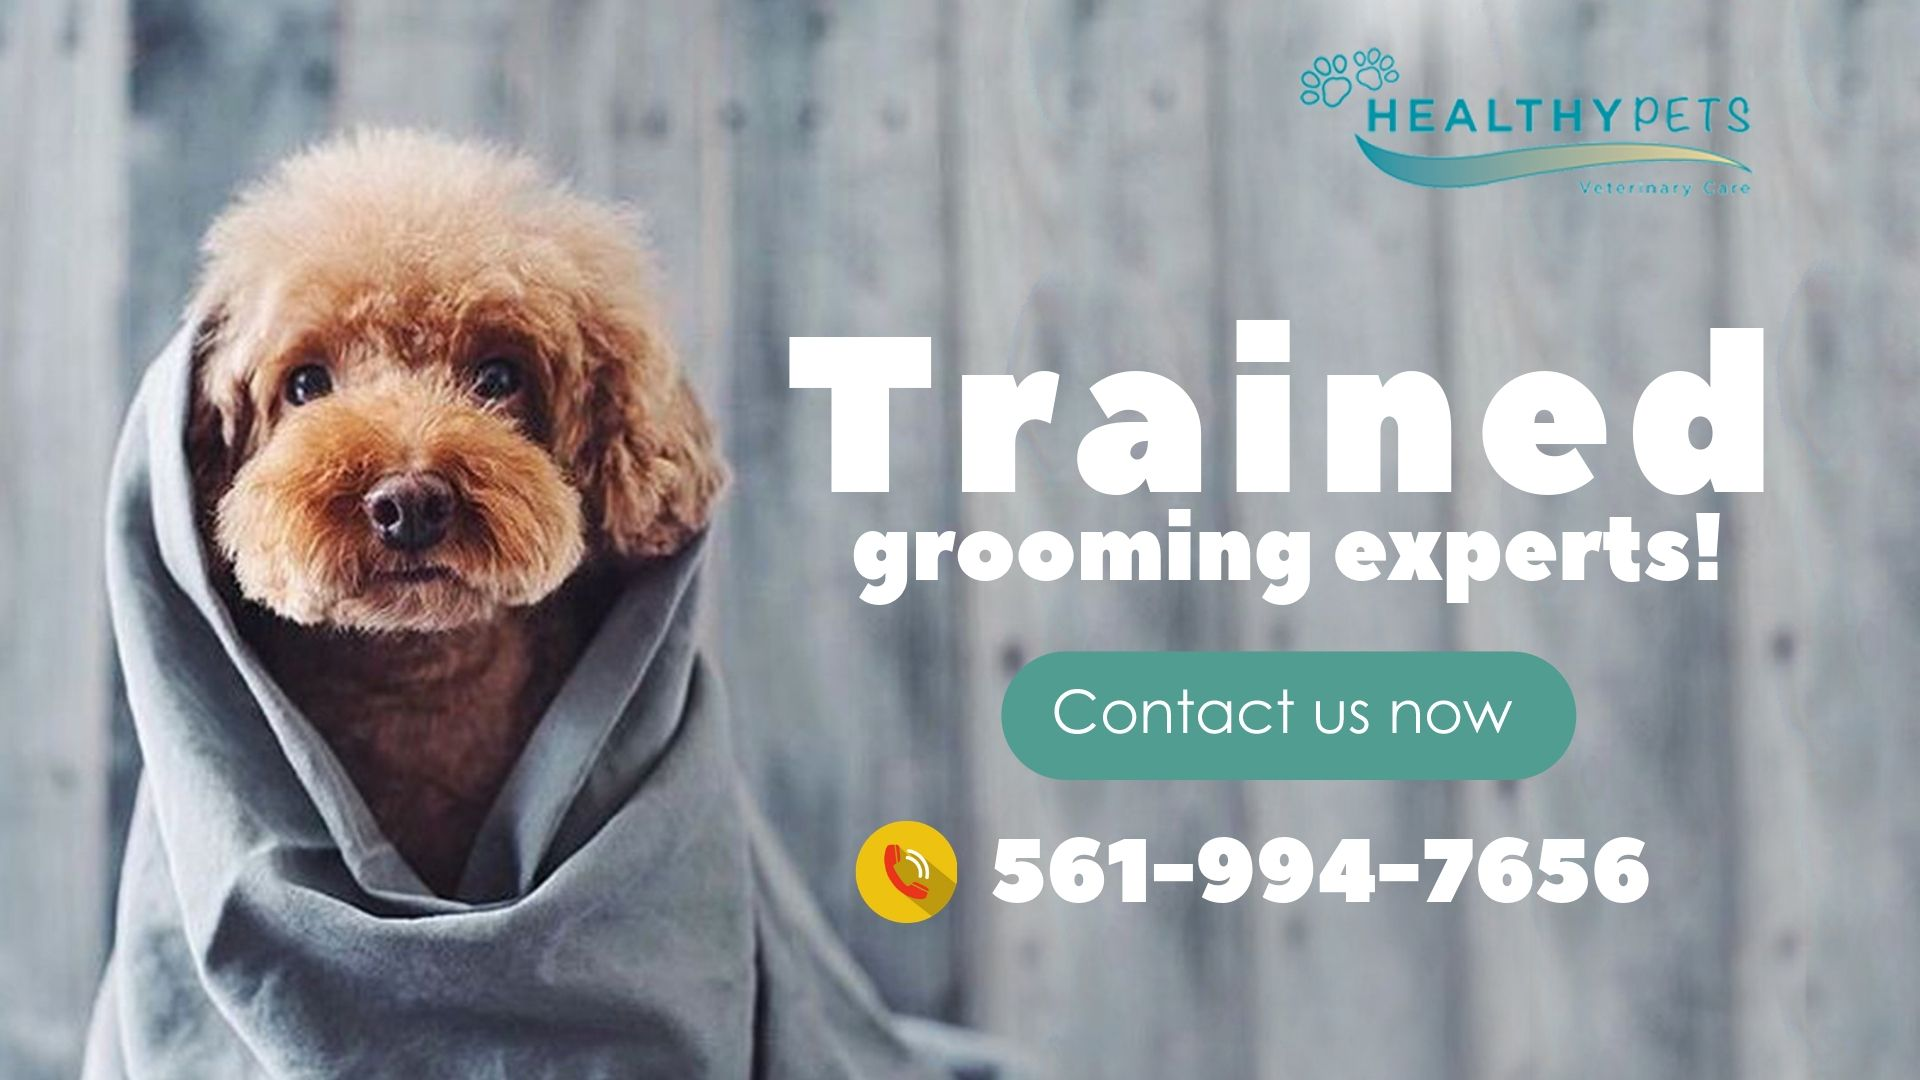 Dog Grooming Services Near Boca Raton Fl Healthy Pets Dog